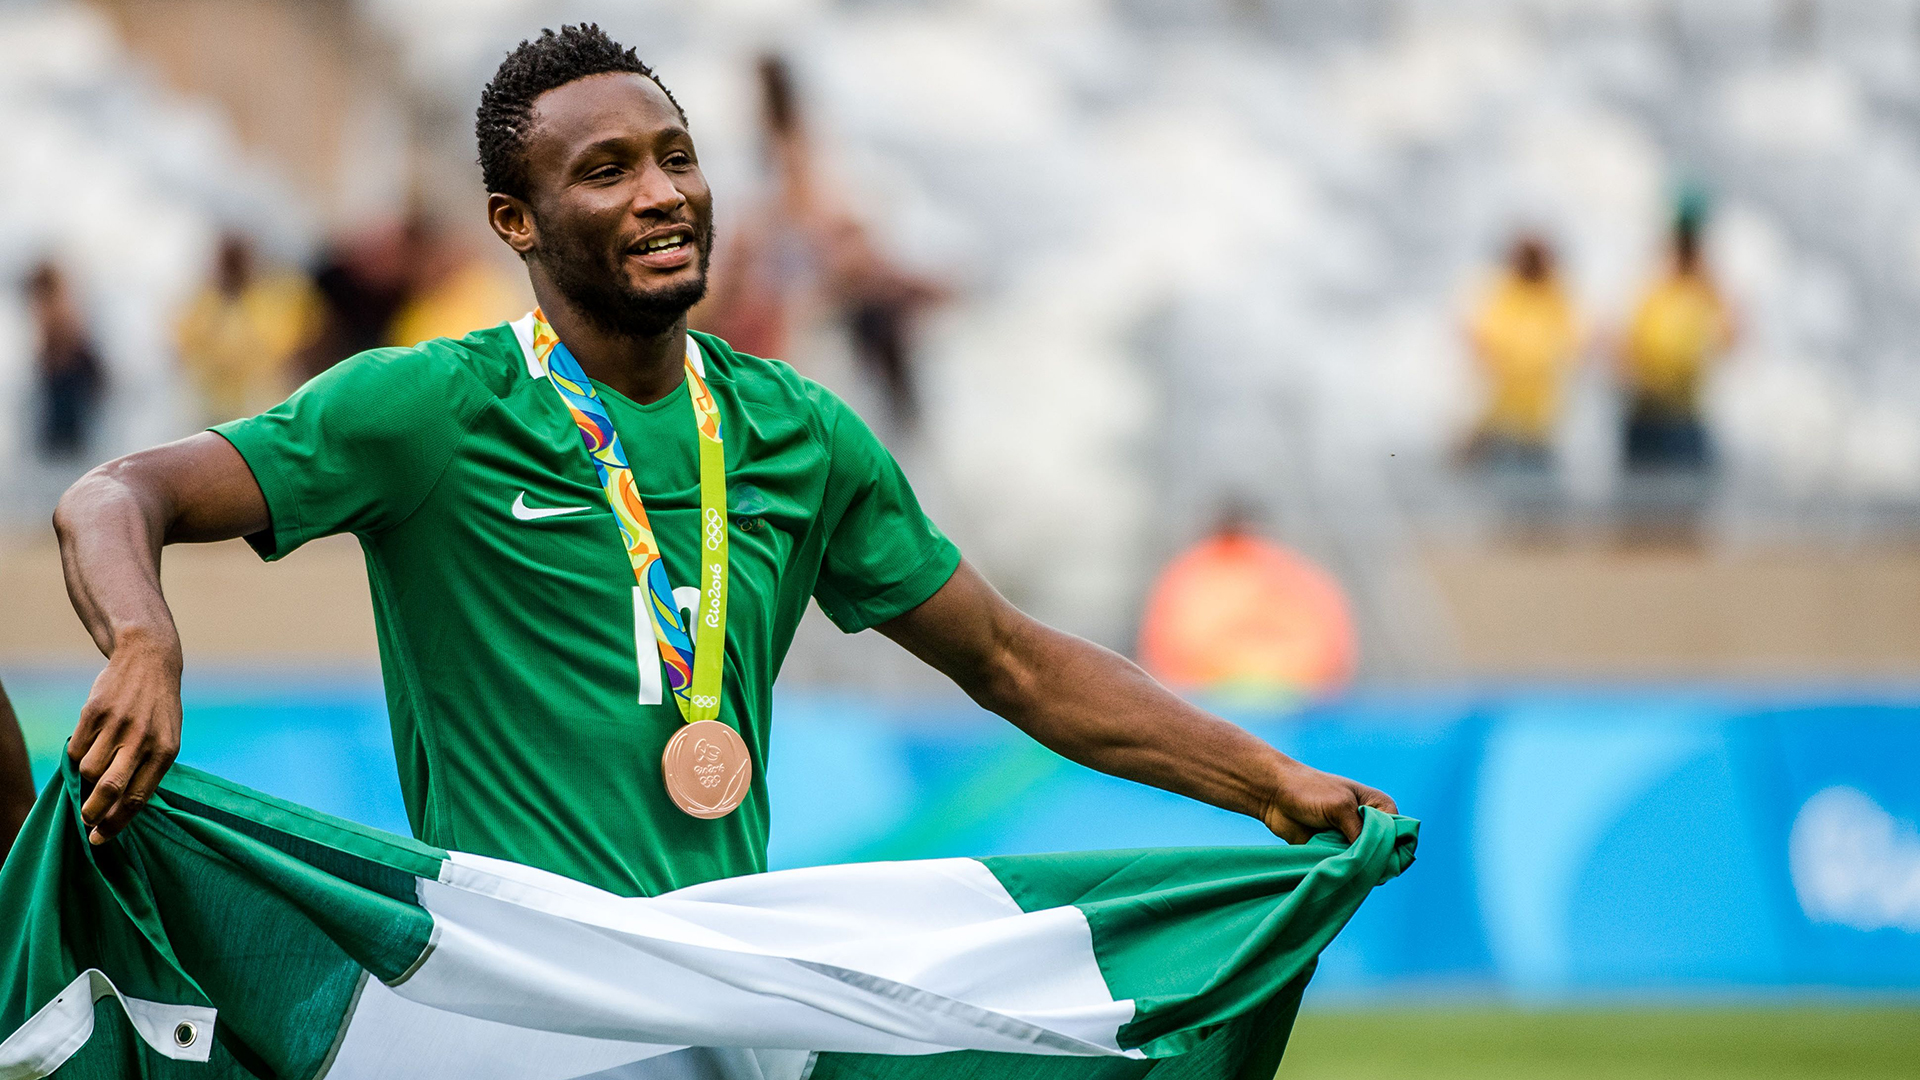 John Obi Mikel: Poor Nigeria ending does not damage legendary status